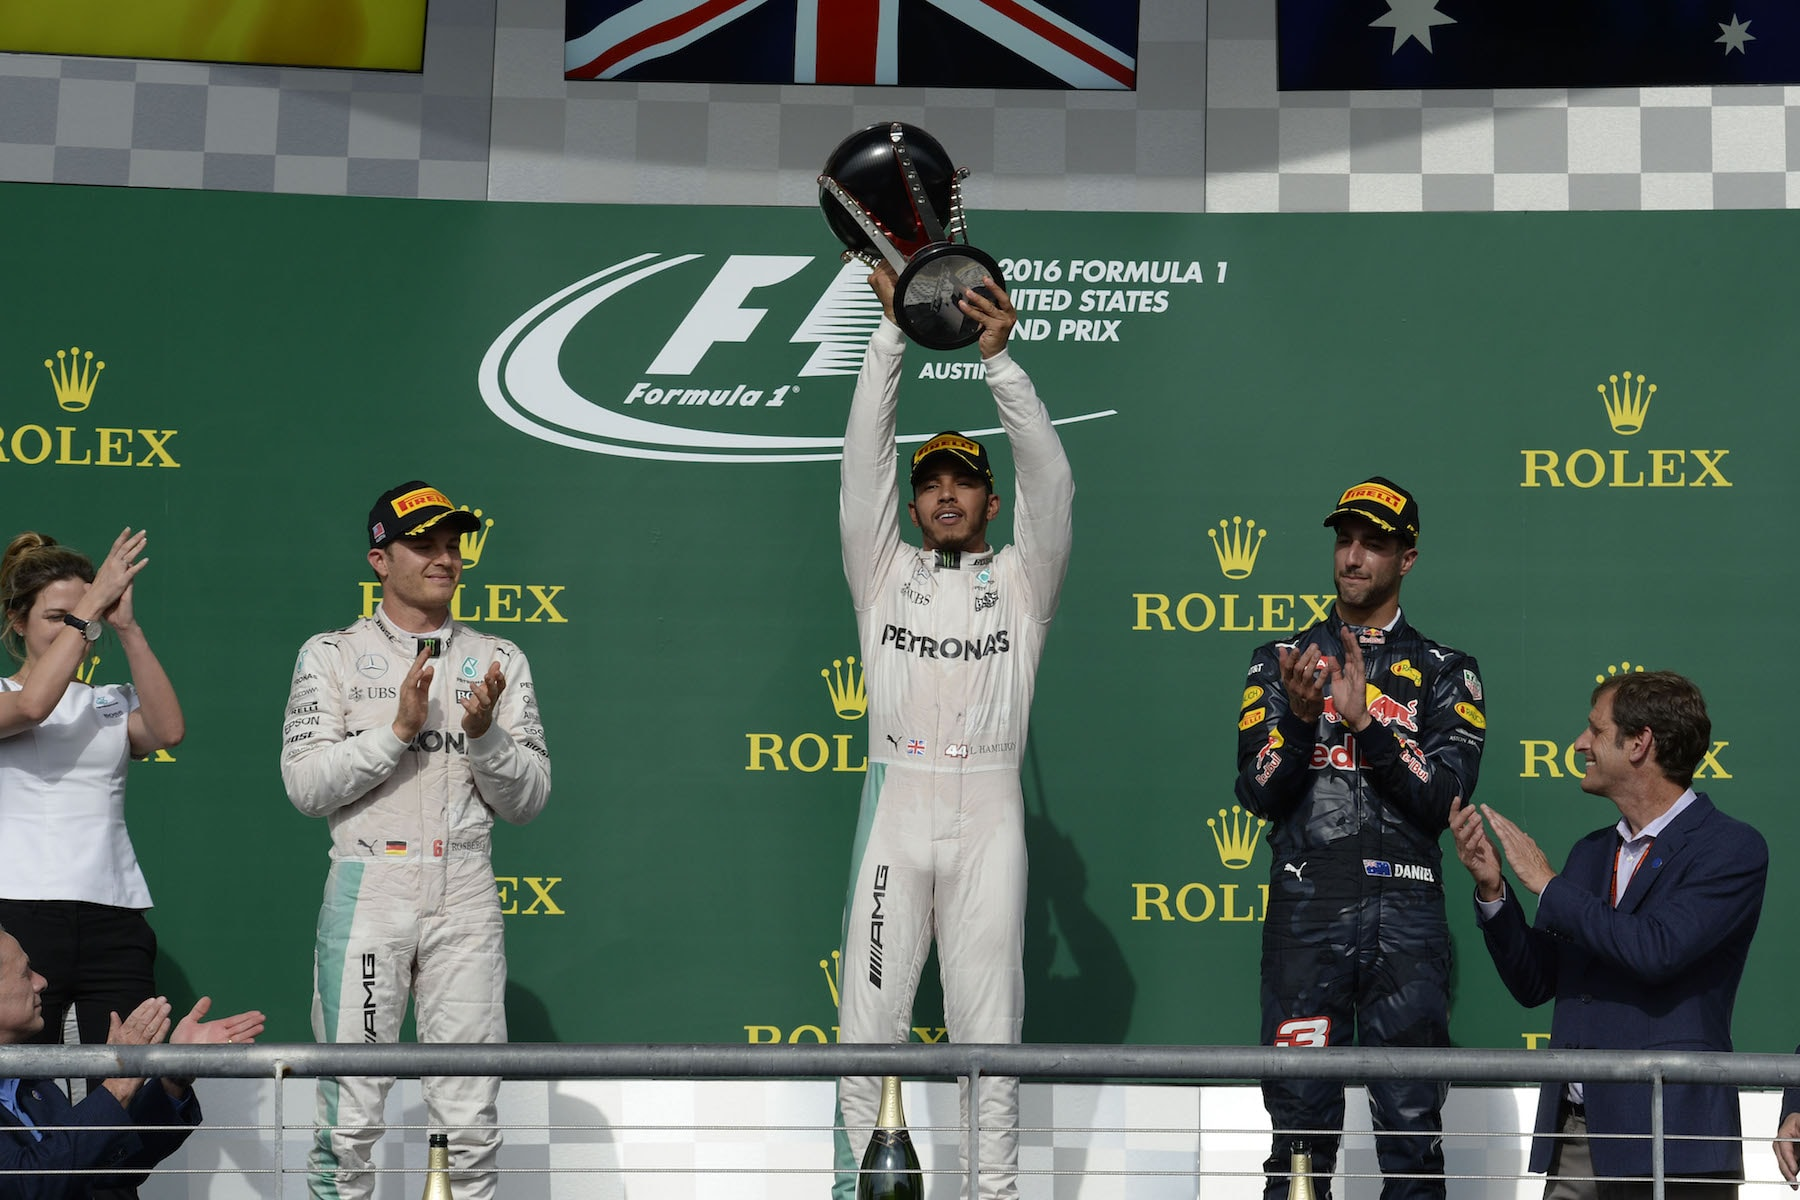 U 2016 Lewis Hamilton with winner trophy 2016 USGP copy.jpg